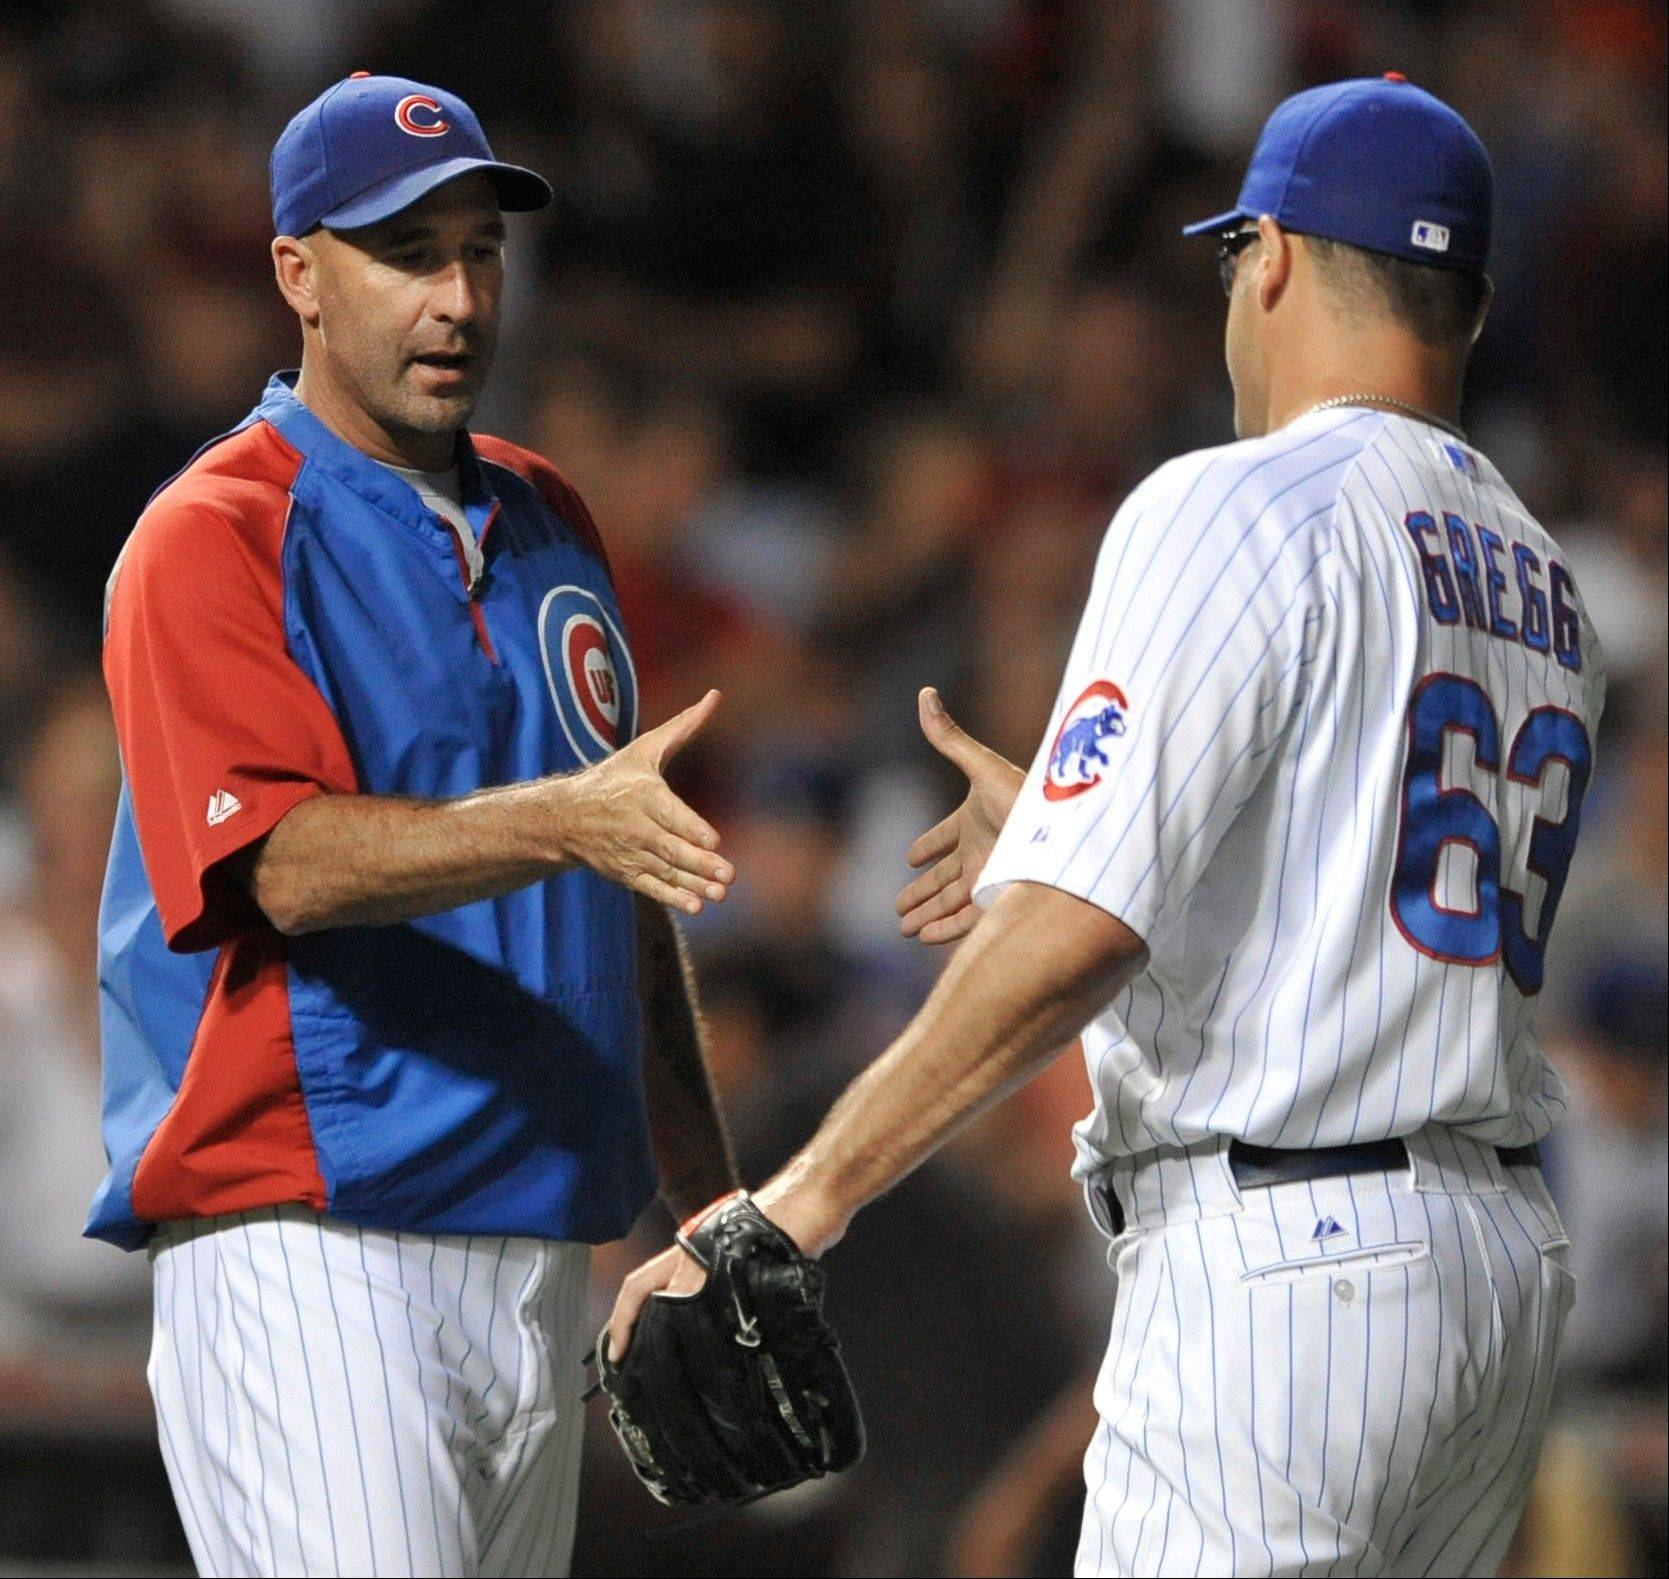 Cubs manager Dale Sveum, here congratulating closer Kevin Gregg after a victory over the Cardinals, has had to deal with a bullpen issue through most of the season's first half.